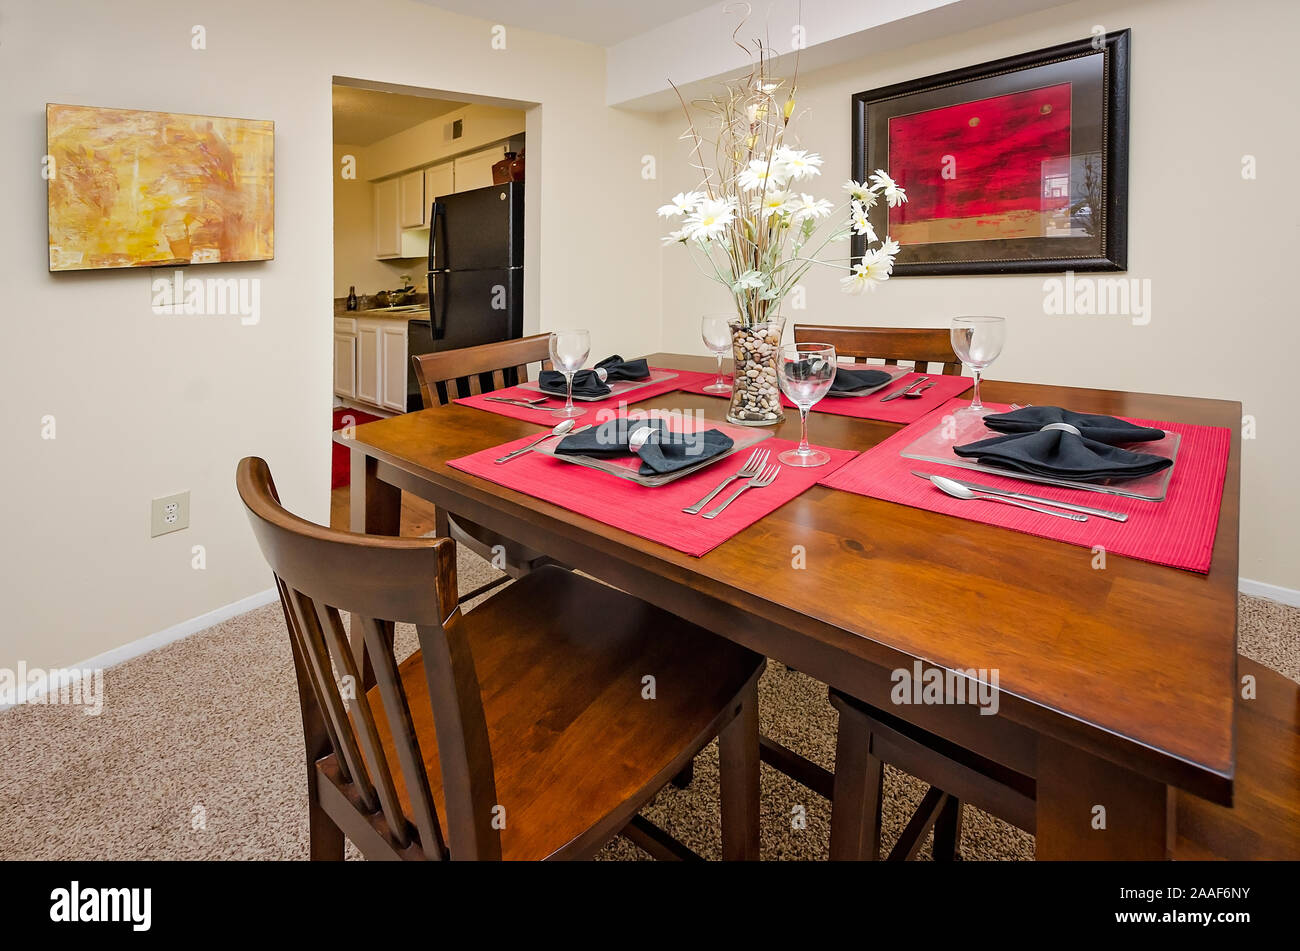 A dining room table features red placemats at Four Seasons ...